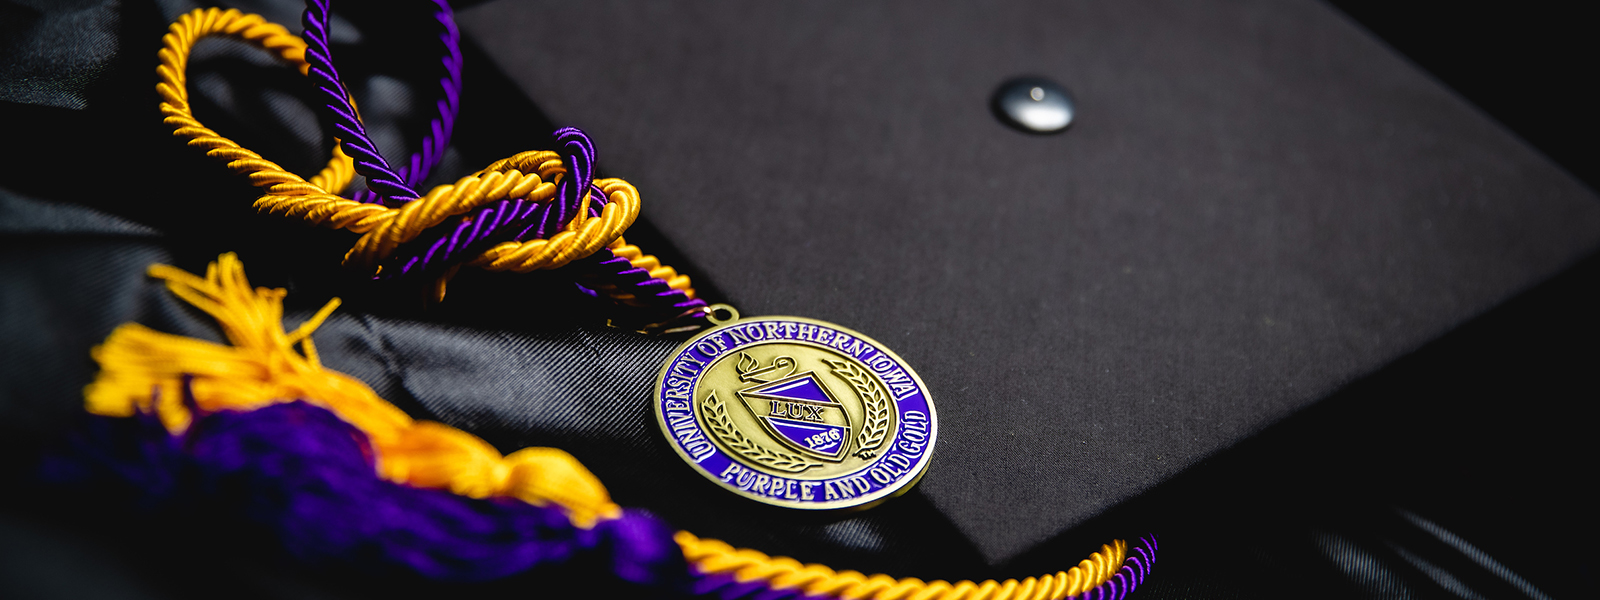 UNI cap, gown and tassels